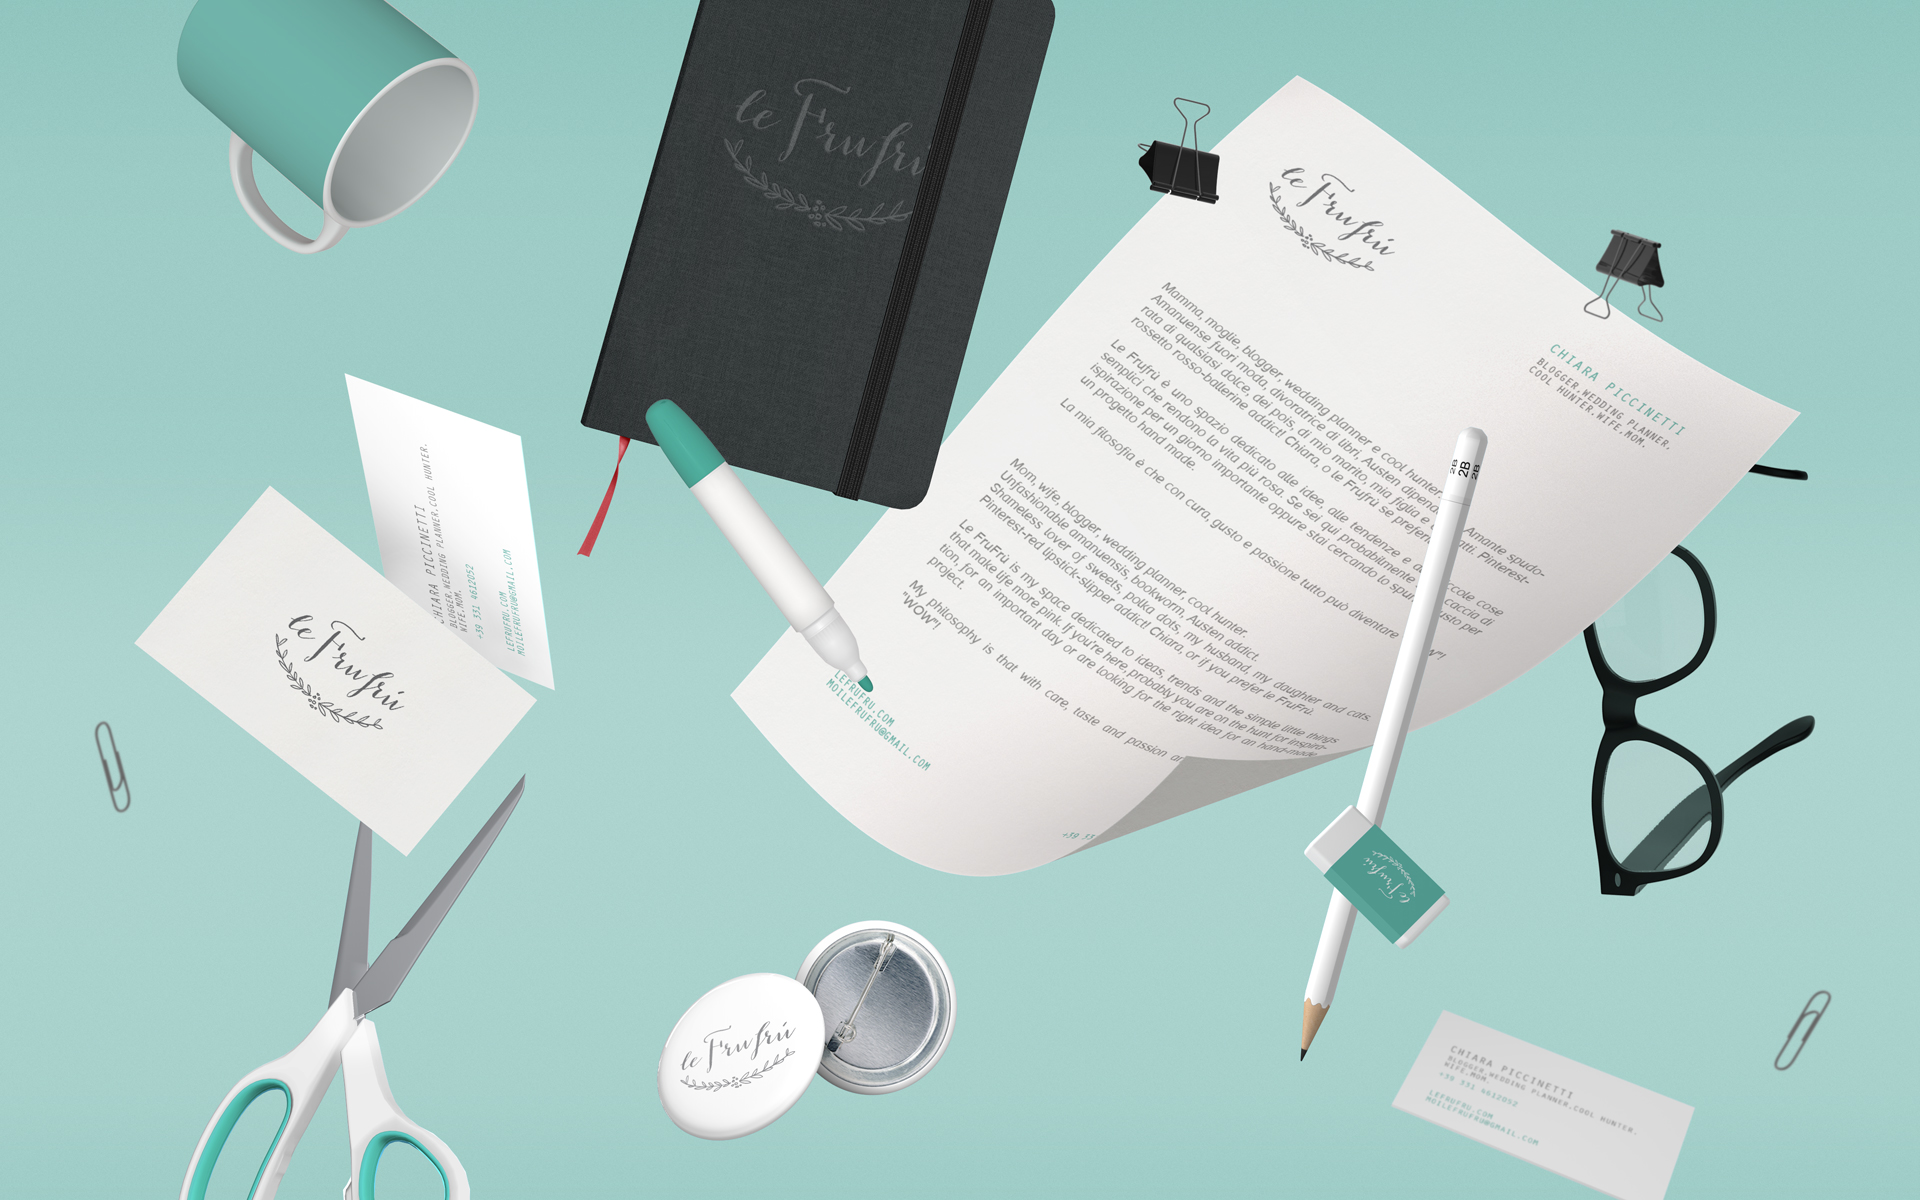 lff_stationery_gravity_1920